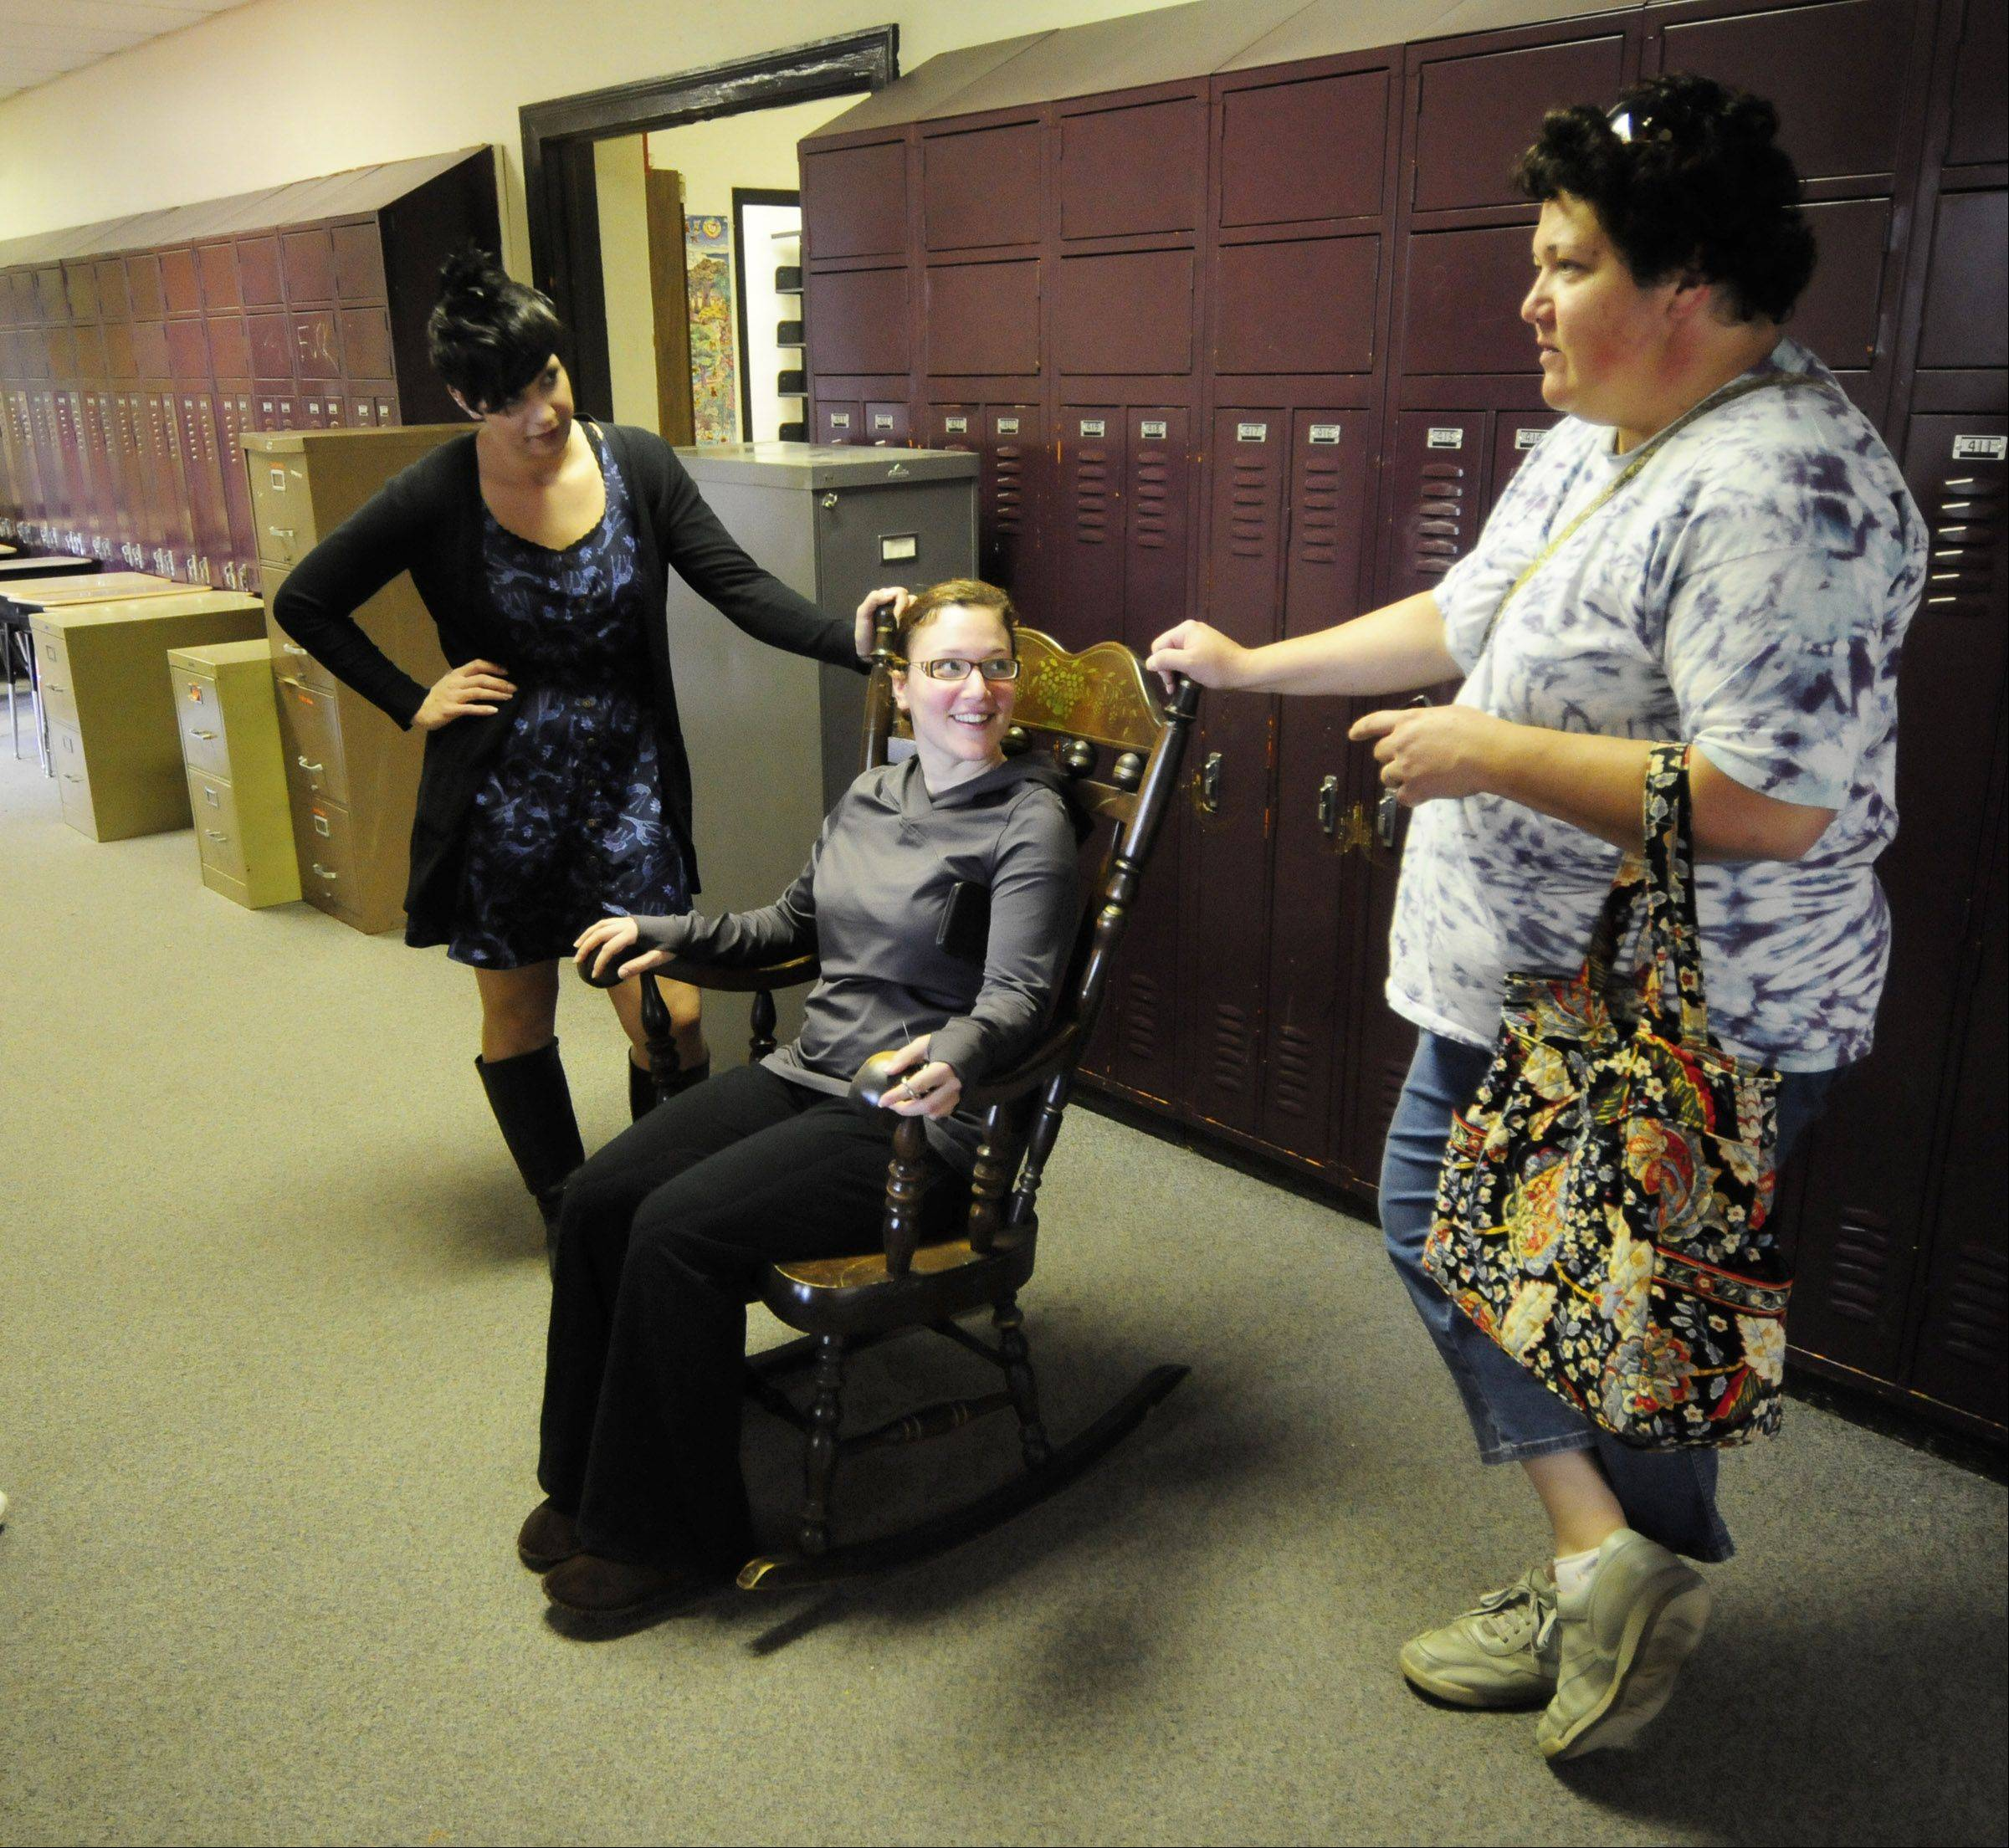 Meg Houser tries out a rocking chair she found for $5. After conferring with her sister Coby Houser, left, and mother Carol Houser, she decided it was a deal too good to pass up.